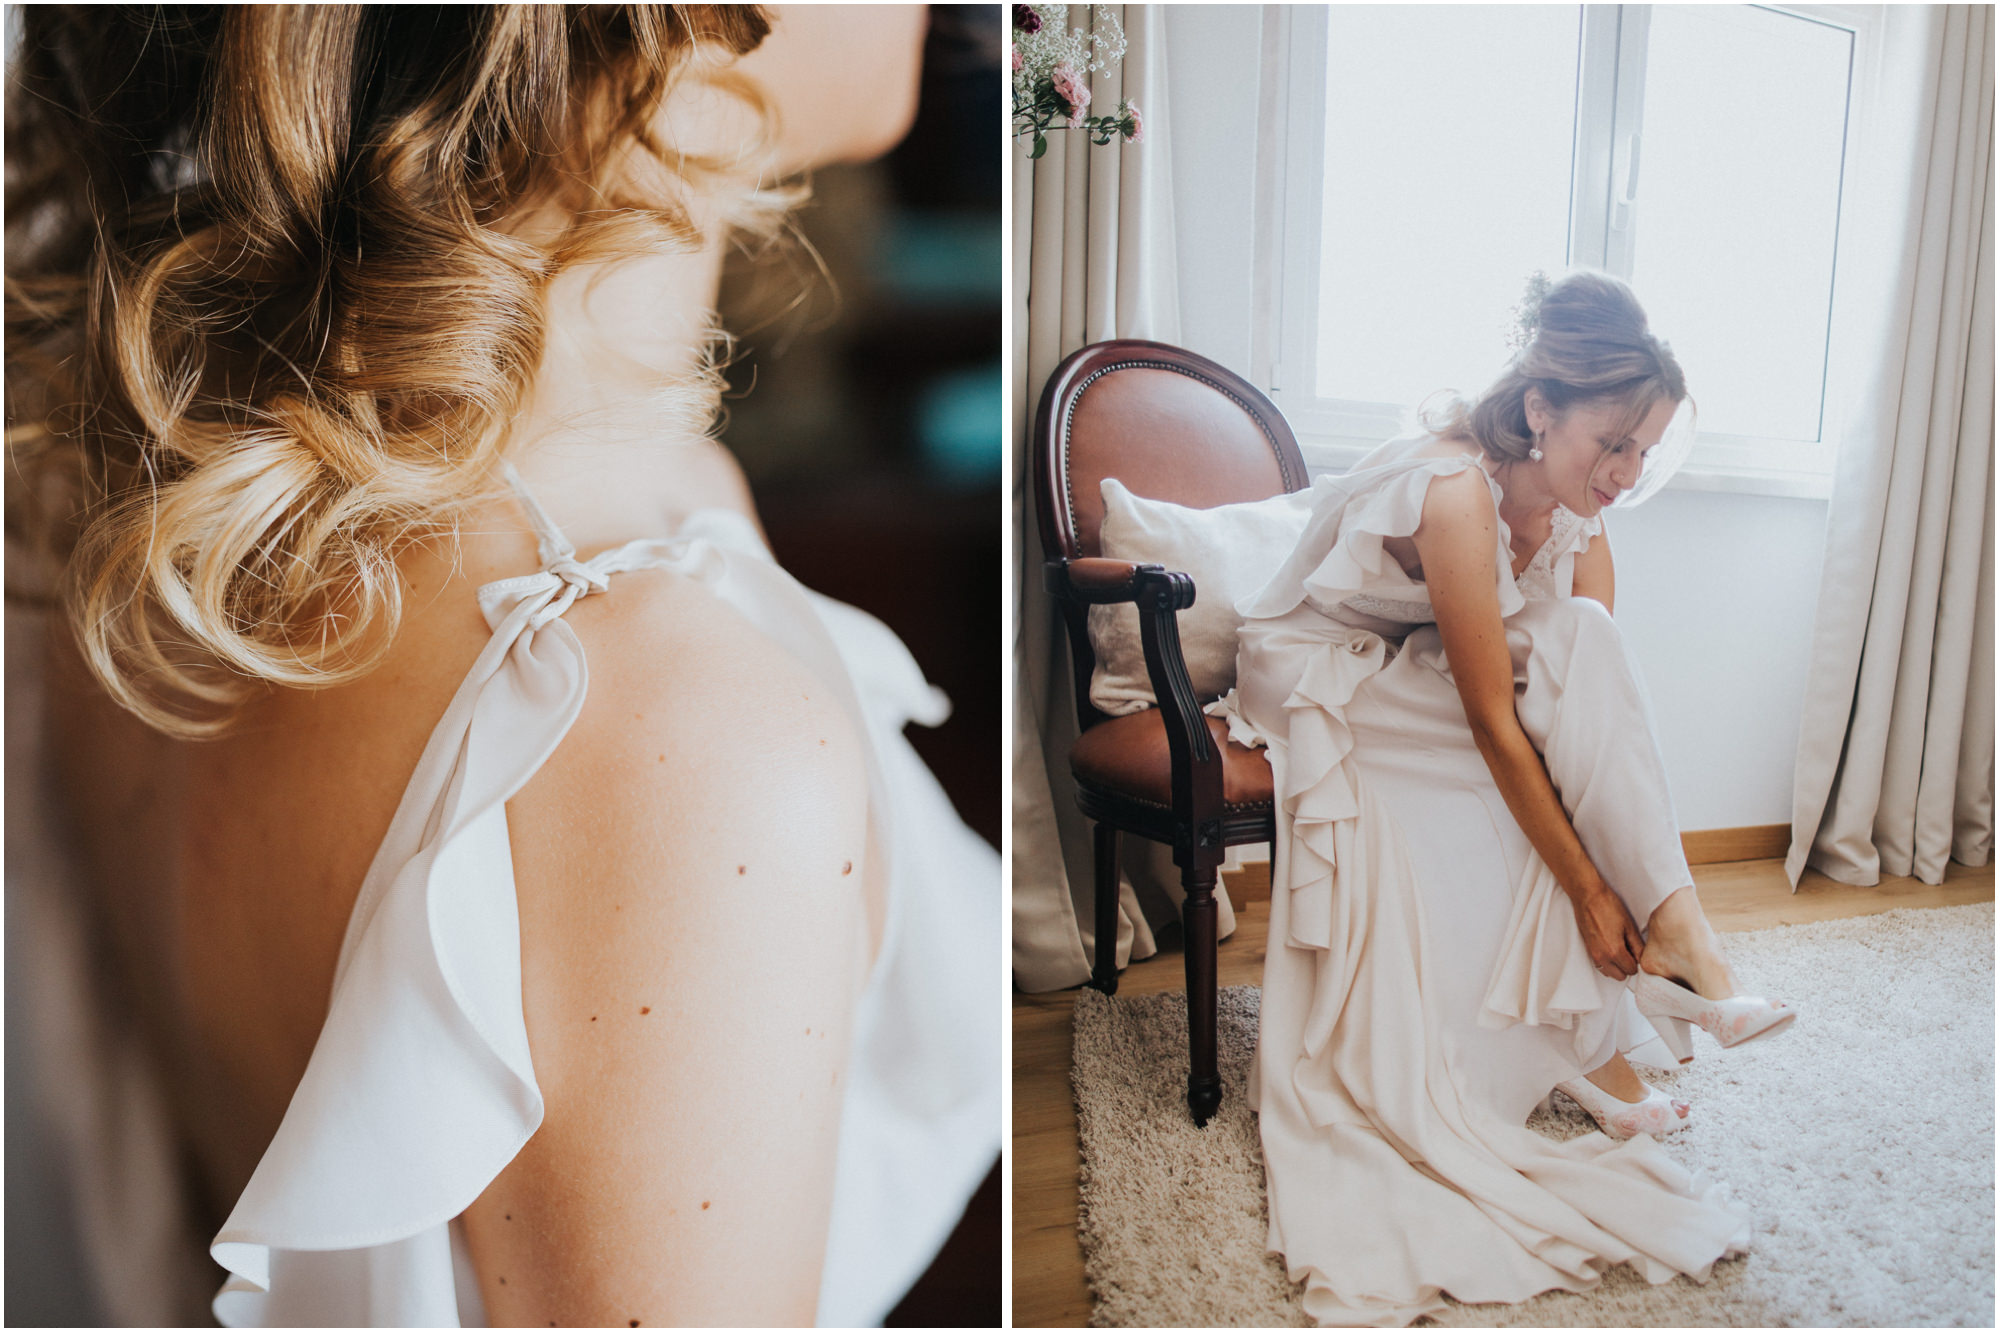 Filipe Santiago Fotografia-fotografo-malveira-lisboa-cascais-mafra-melhores-reportagem-wedding-photography-portugal-lisbon-best-natural-casamentos-lifestyle-bride-ideias-rustic-boho-hair-mackup-damas-preparativos-preparations-bridemaids-dress-shoes